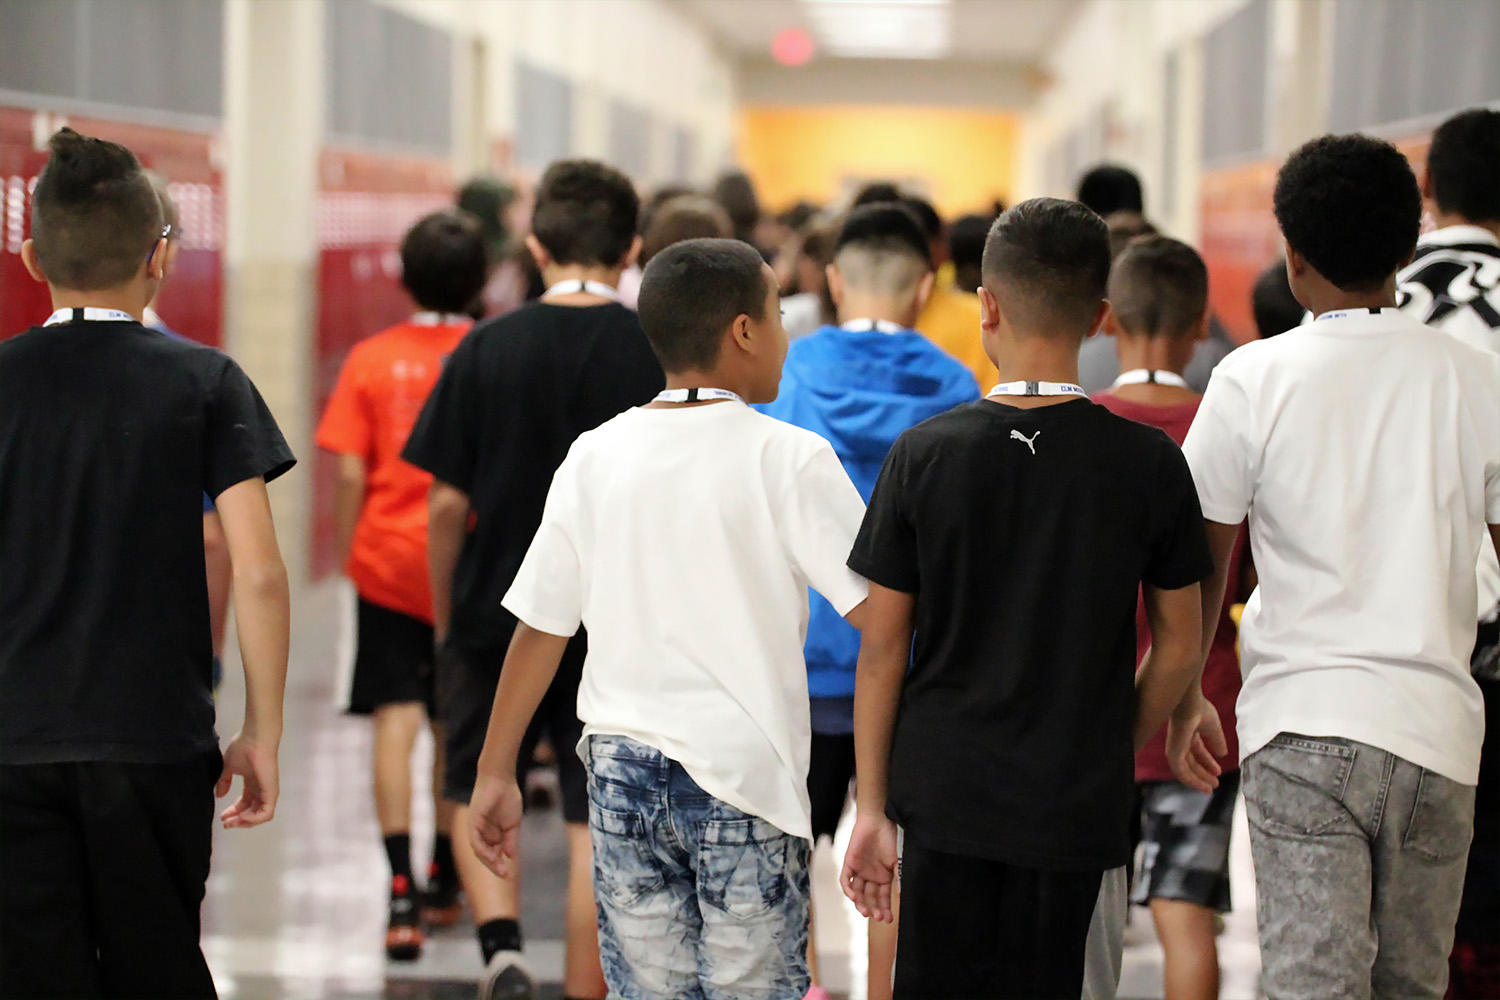 Elm students walk in the school hallways between classes.